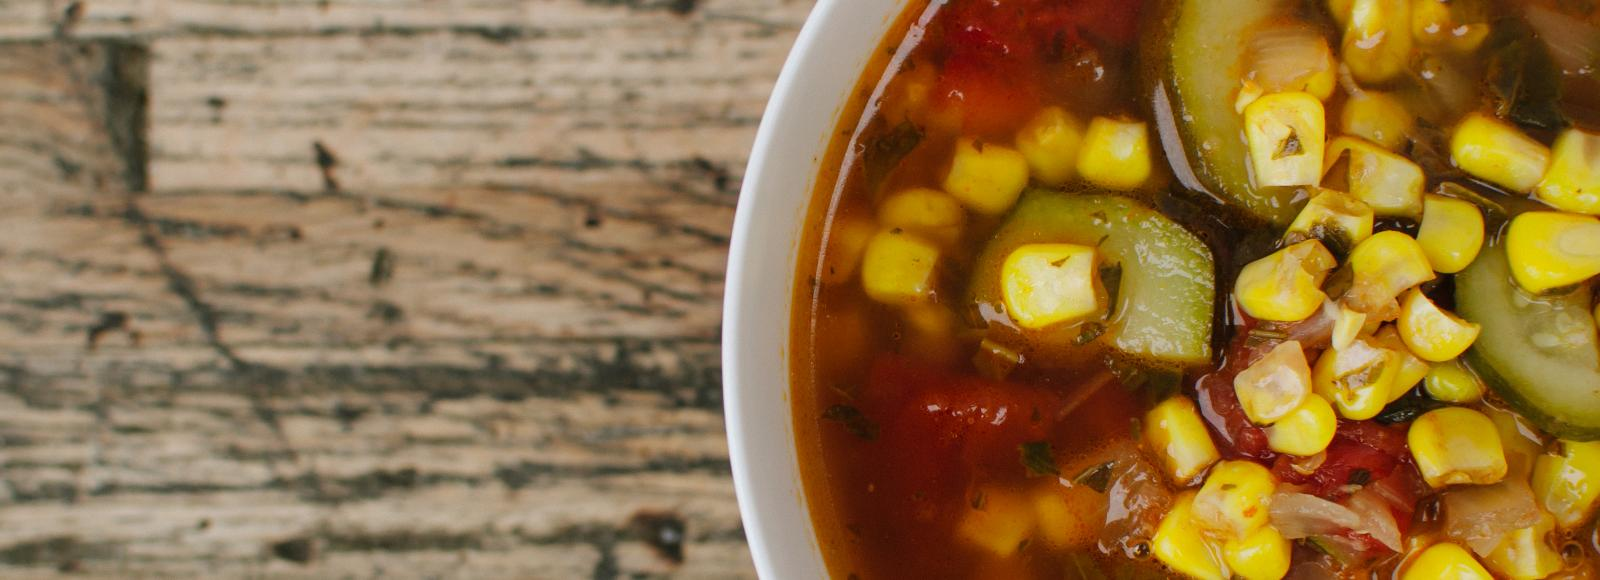 While bowl of vegetable soup with corn, zucchini, and tomatoes on rustic wood table